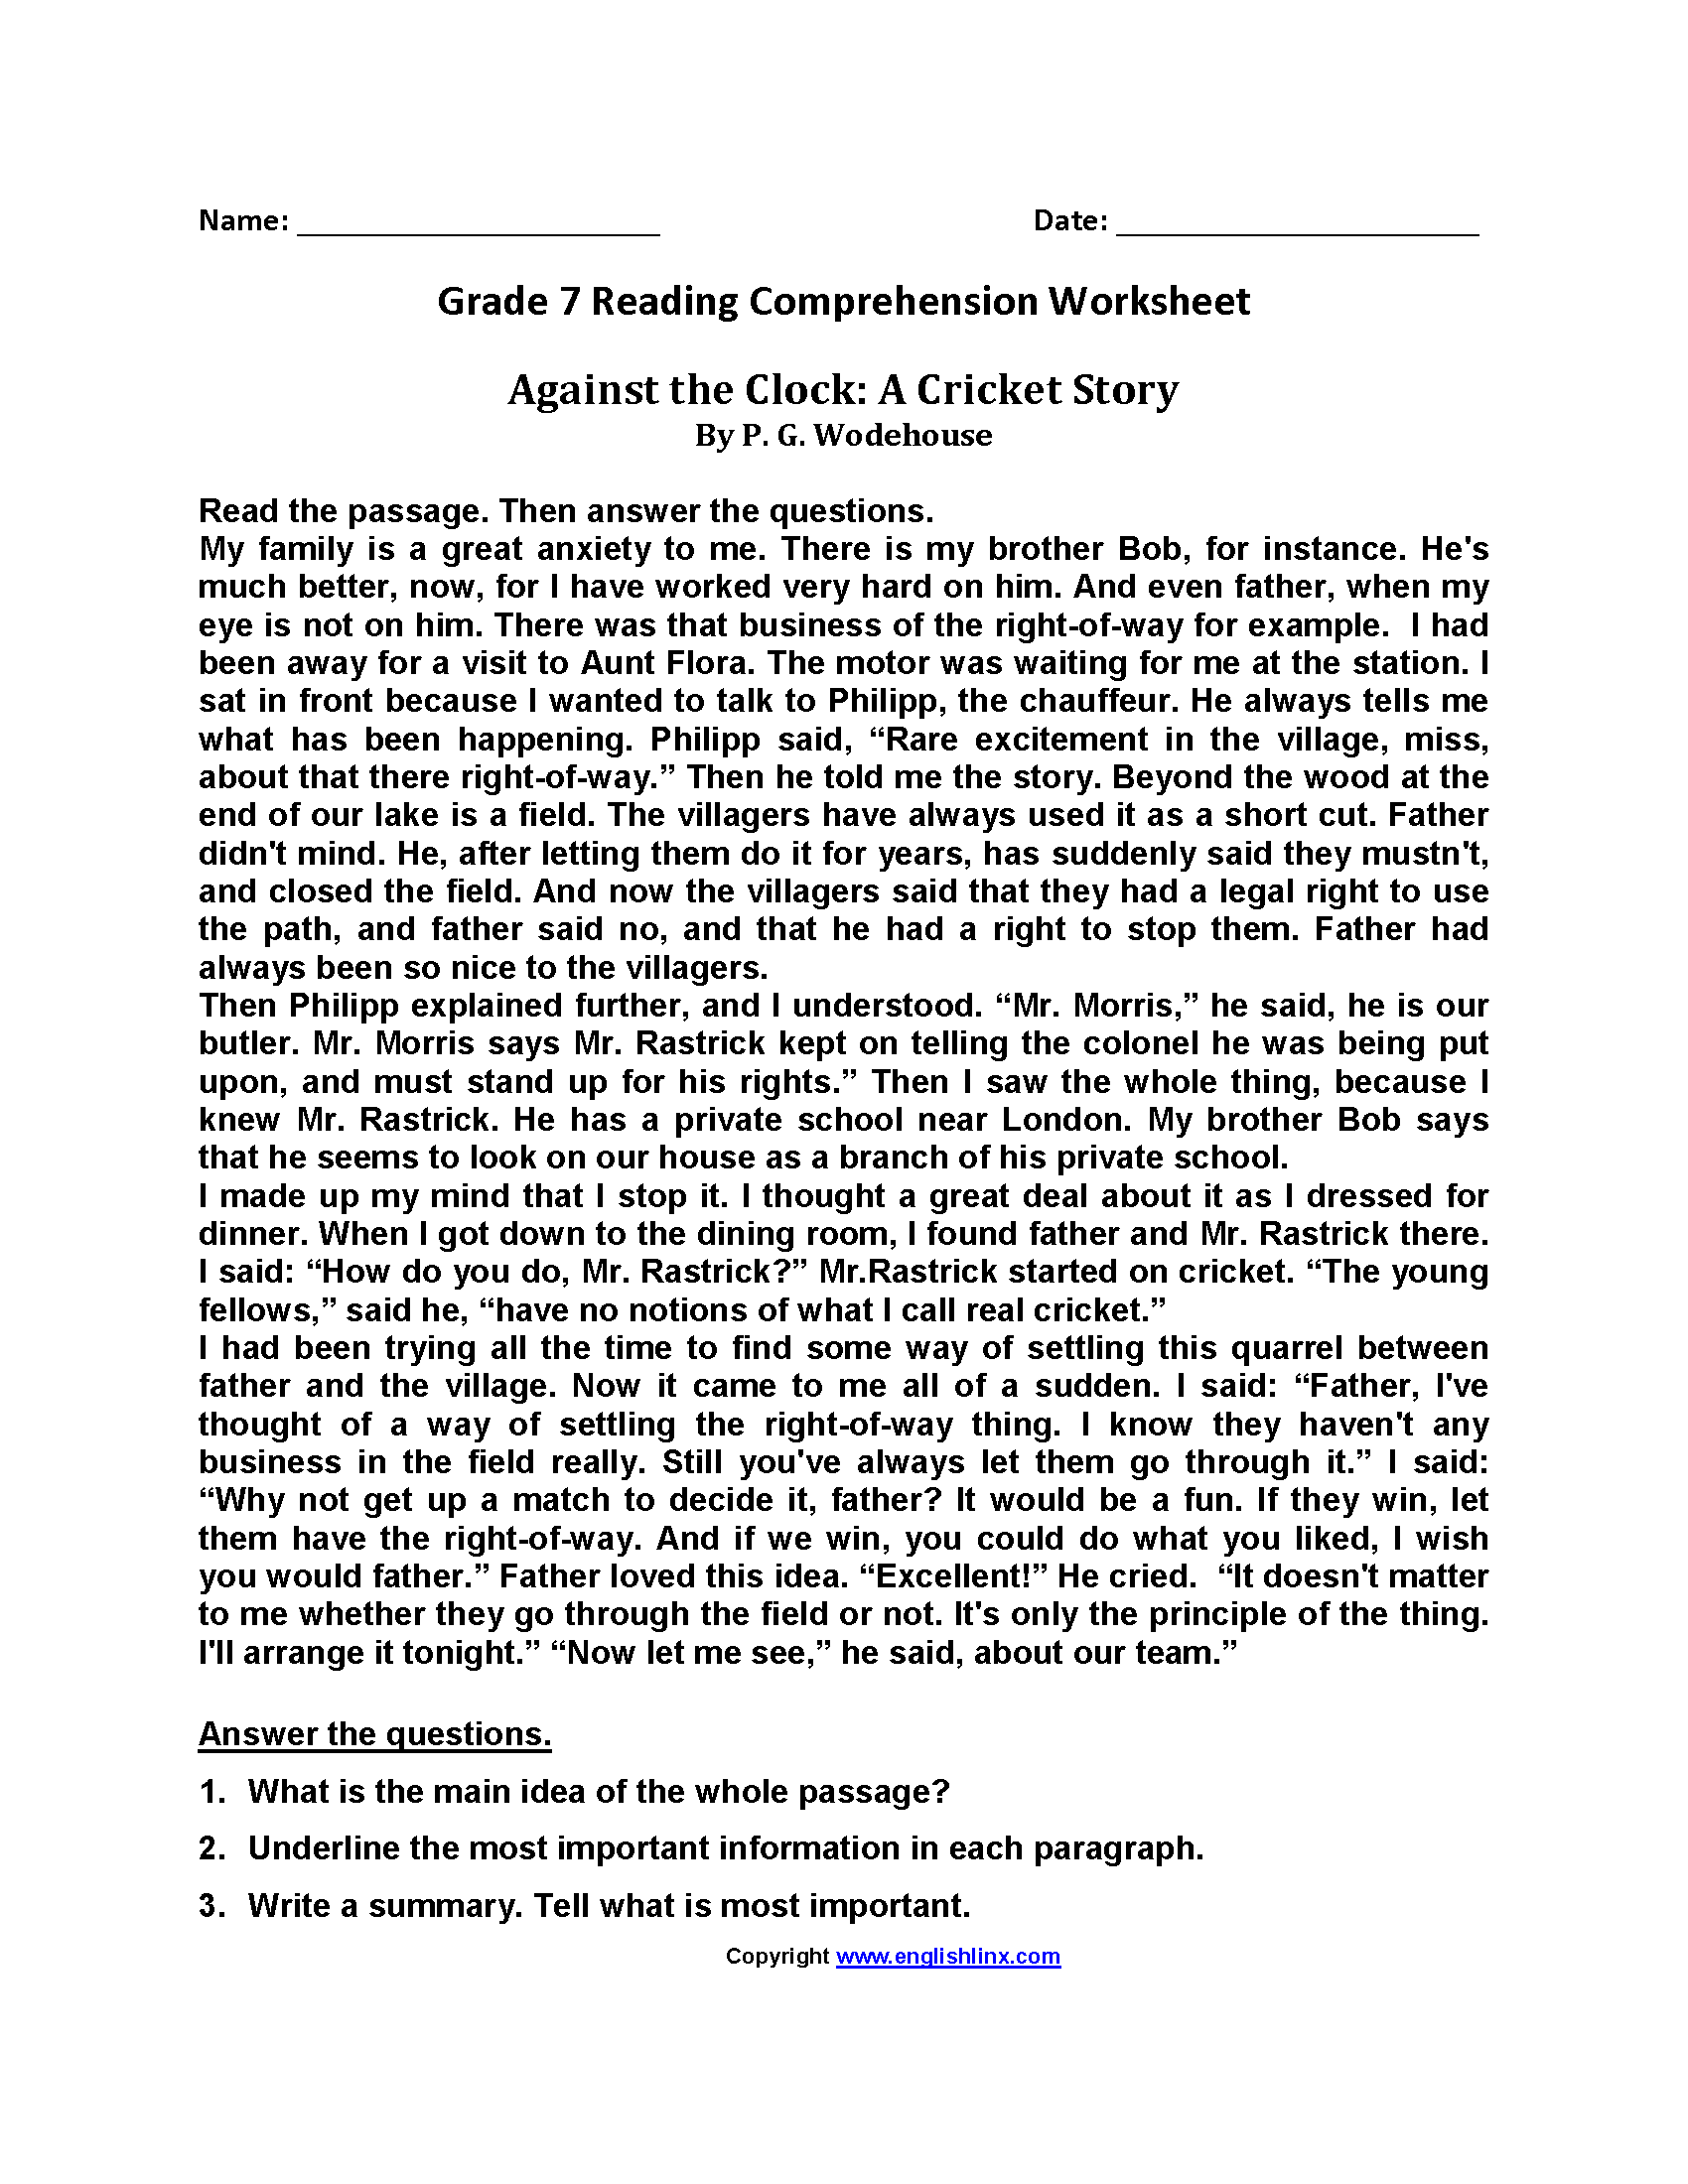 Worksheets Reading Worksheets 7th Grade reading worksheets seventh grade worksheets